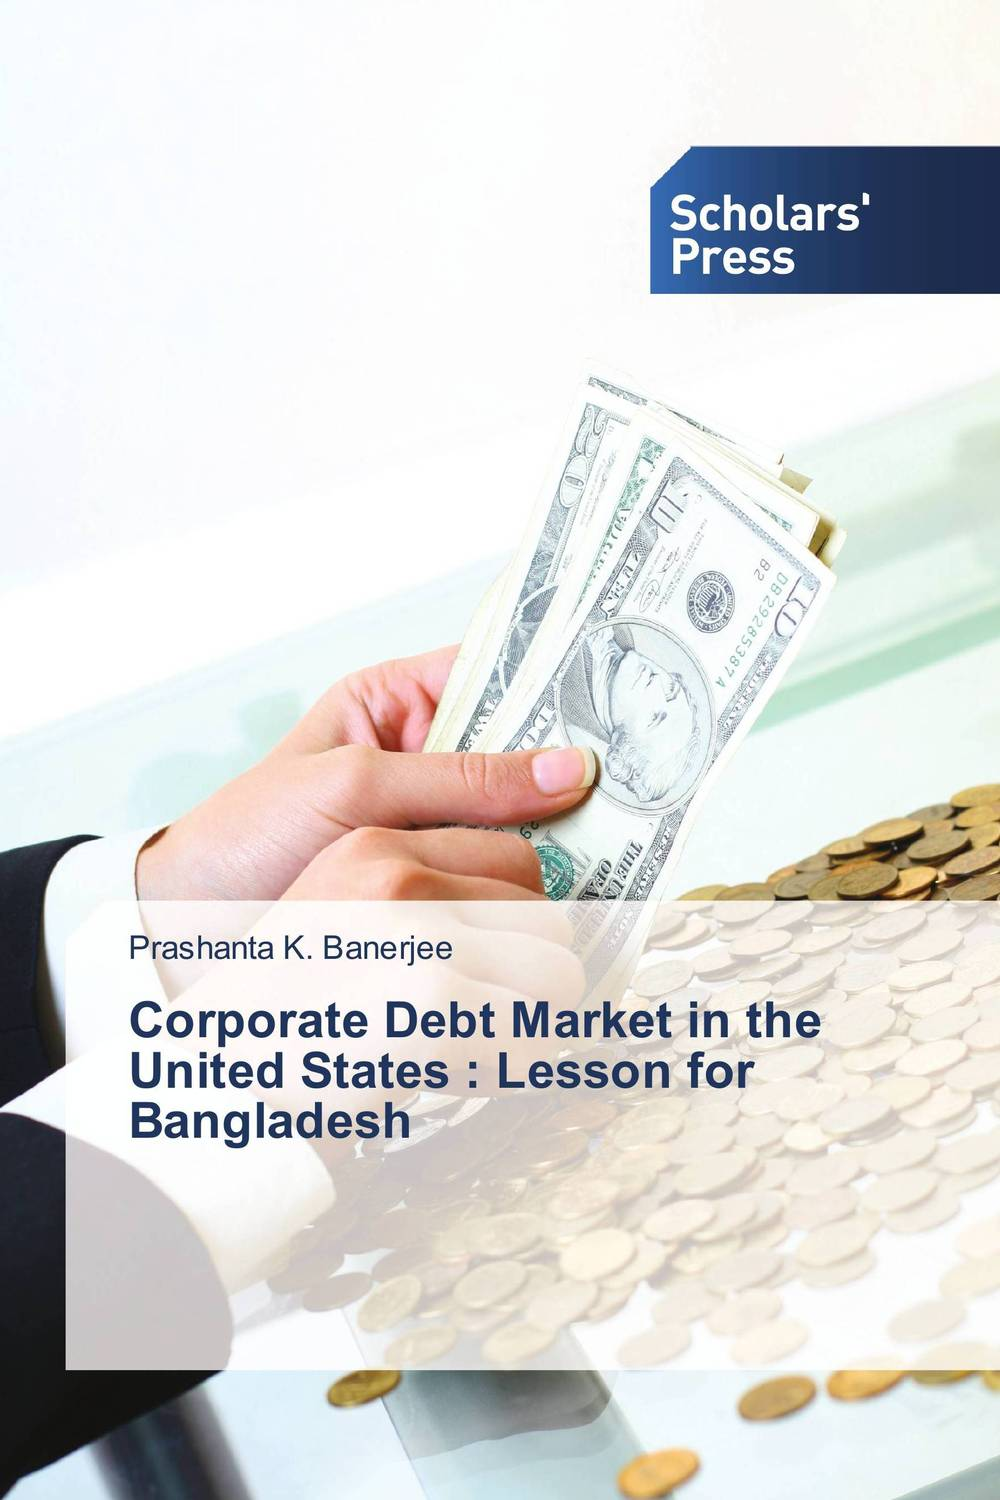 Corporate Debt Market in the United States : Lesson for Bangladesh wendy patton making hard cash in a soft real estate market find the next high growth emerging markets buy new construction at big discounts uncover hidden properties raise private funds when bank lending is tight